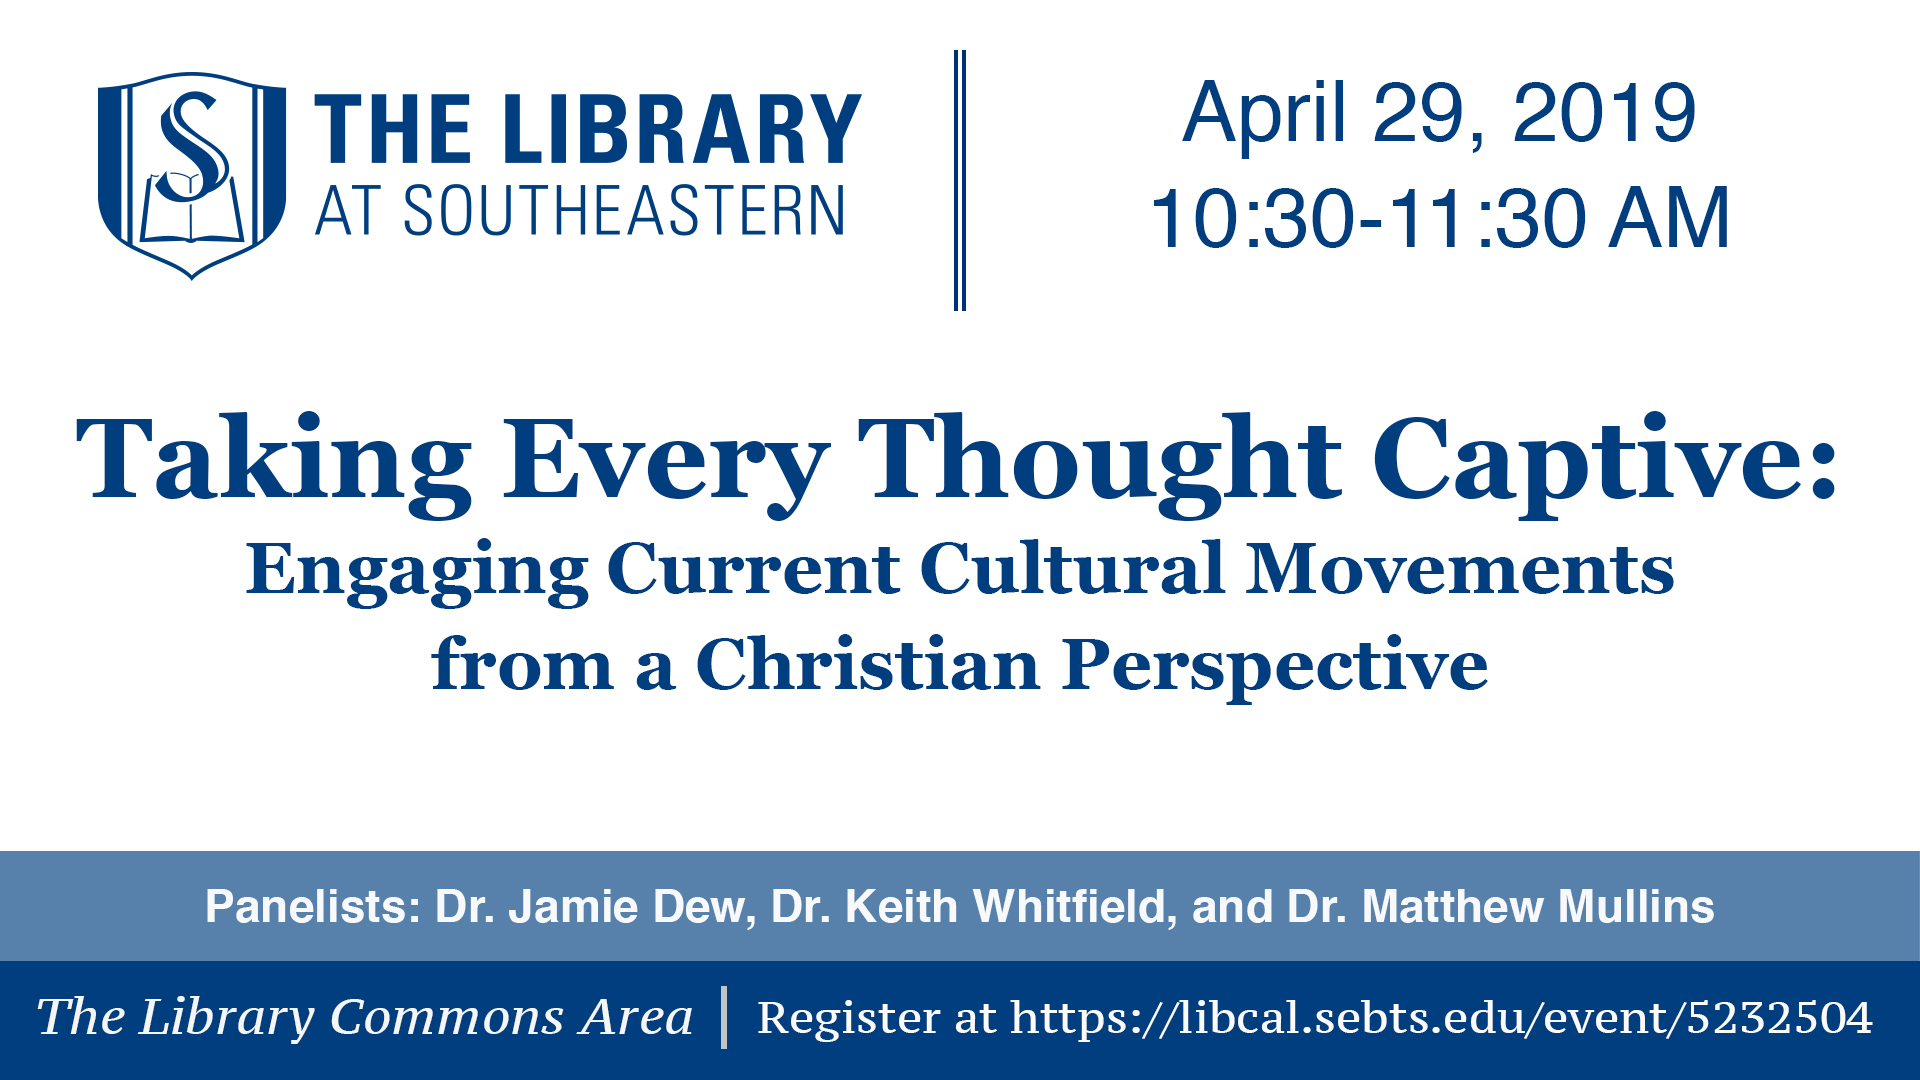 Taking Every Thought Captive: Engaging Current Cultural Movements from a Christian Perspective